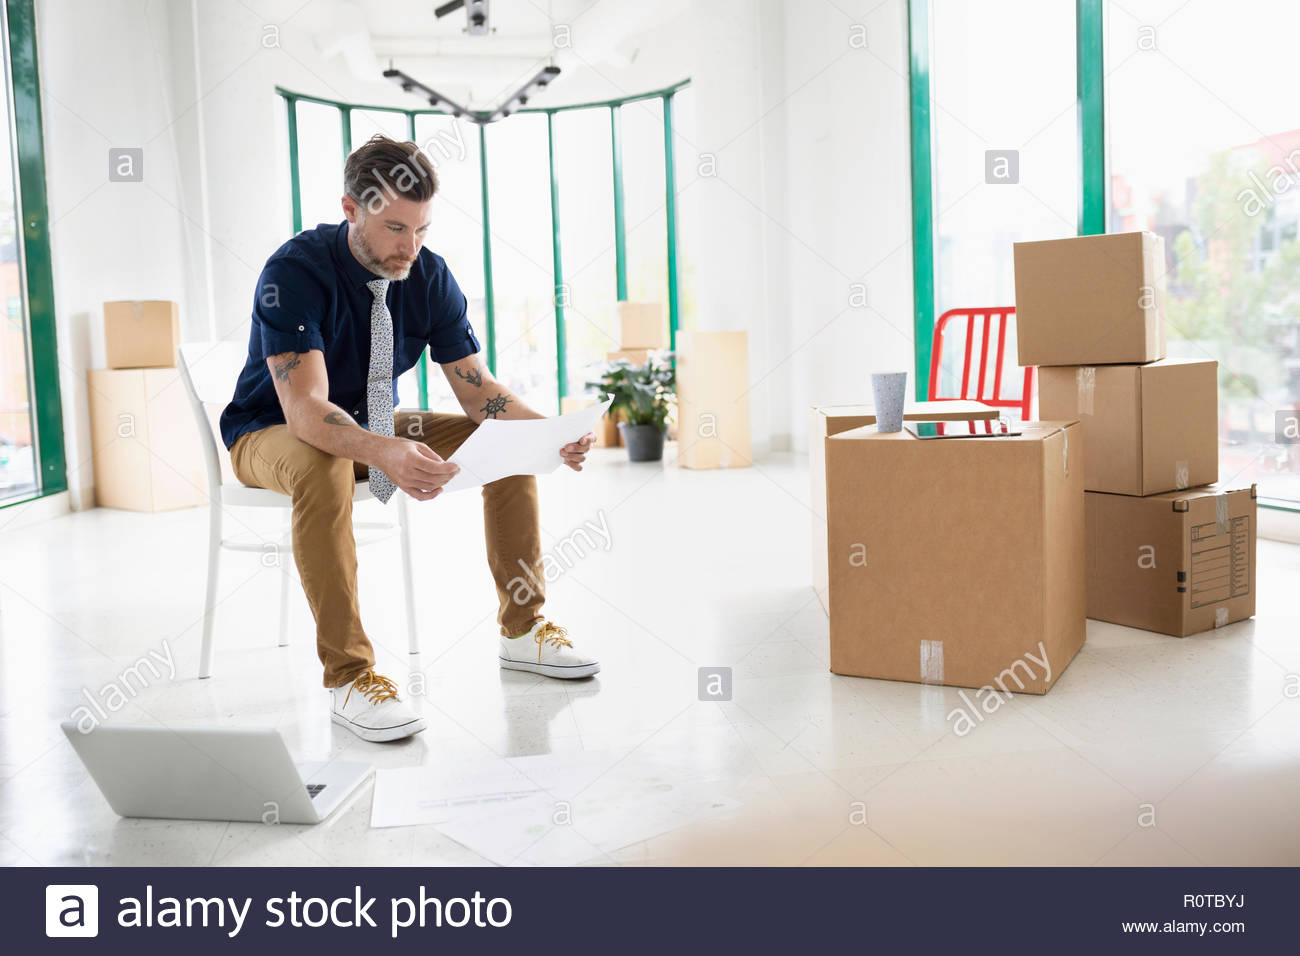 Businessman with laptop and blueprints in new, empty office space with cardboard boxes - Stock Image